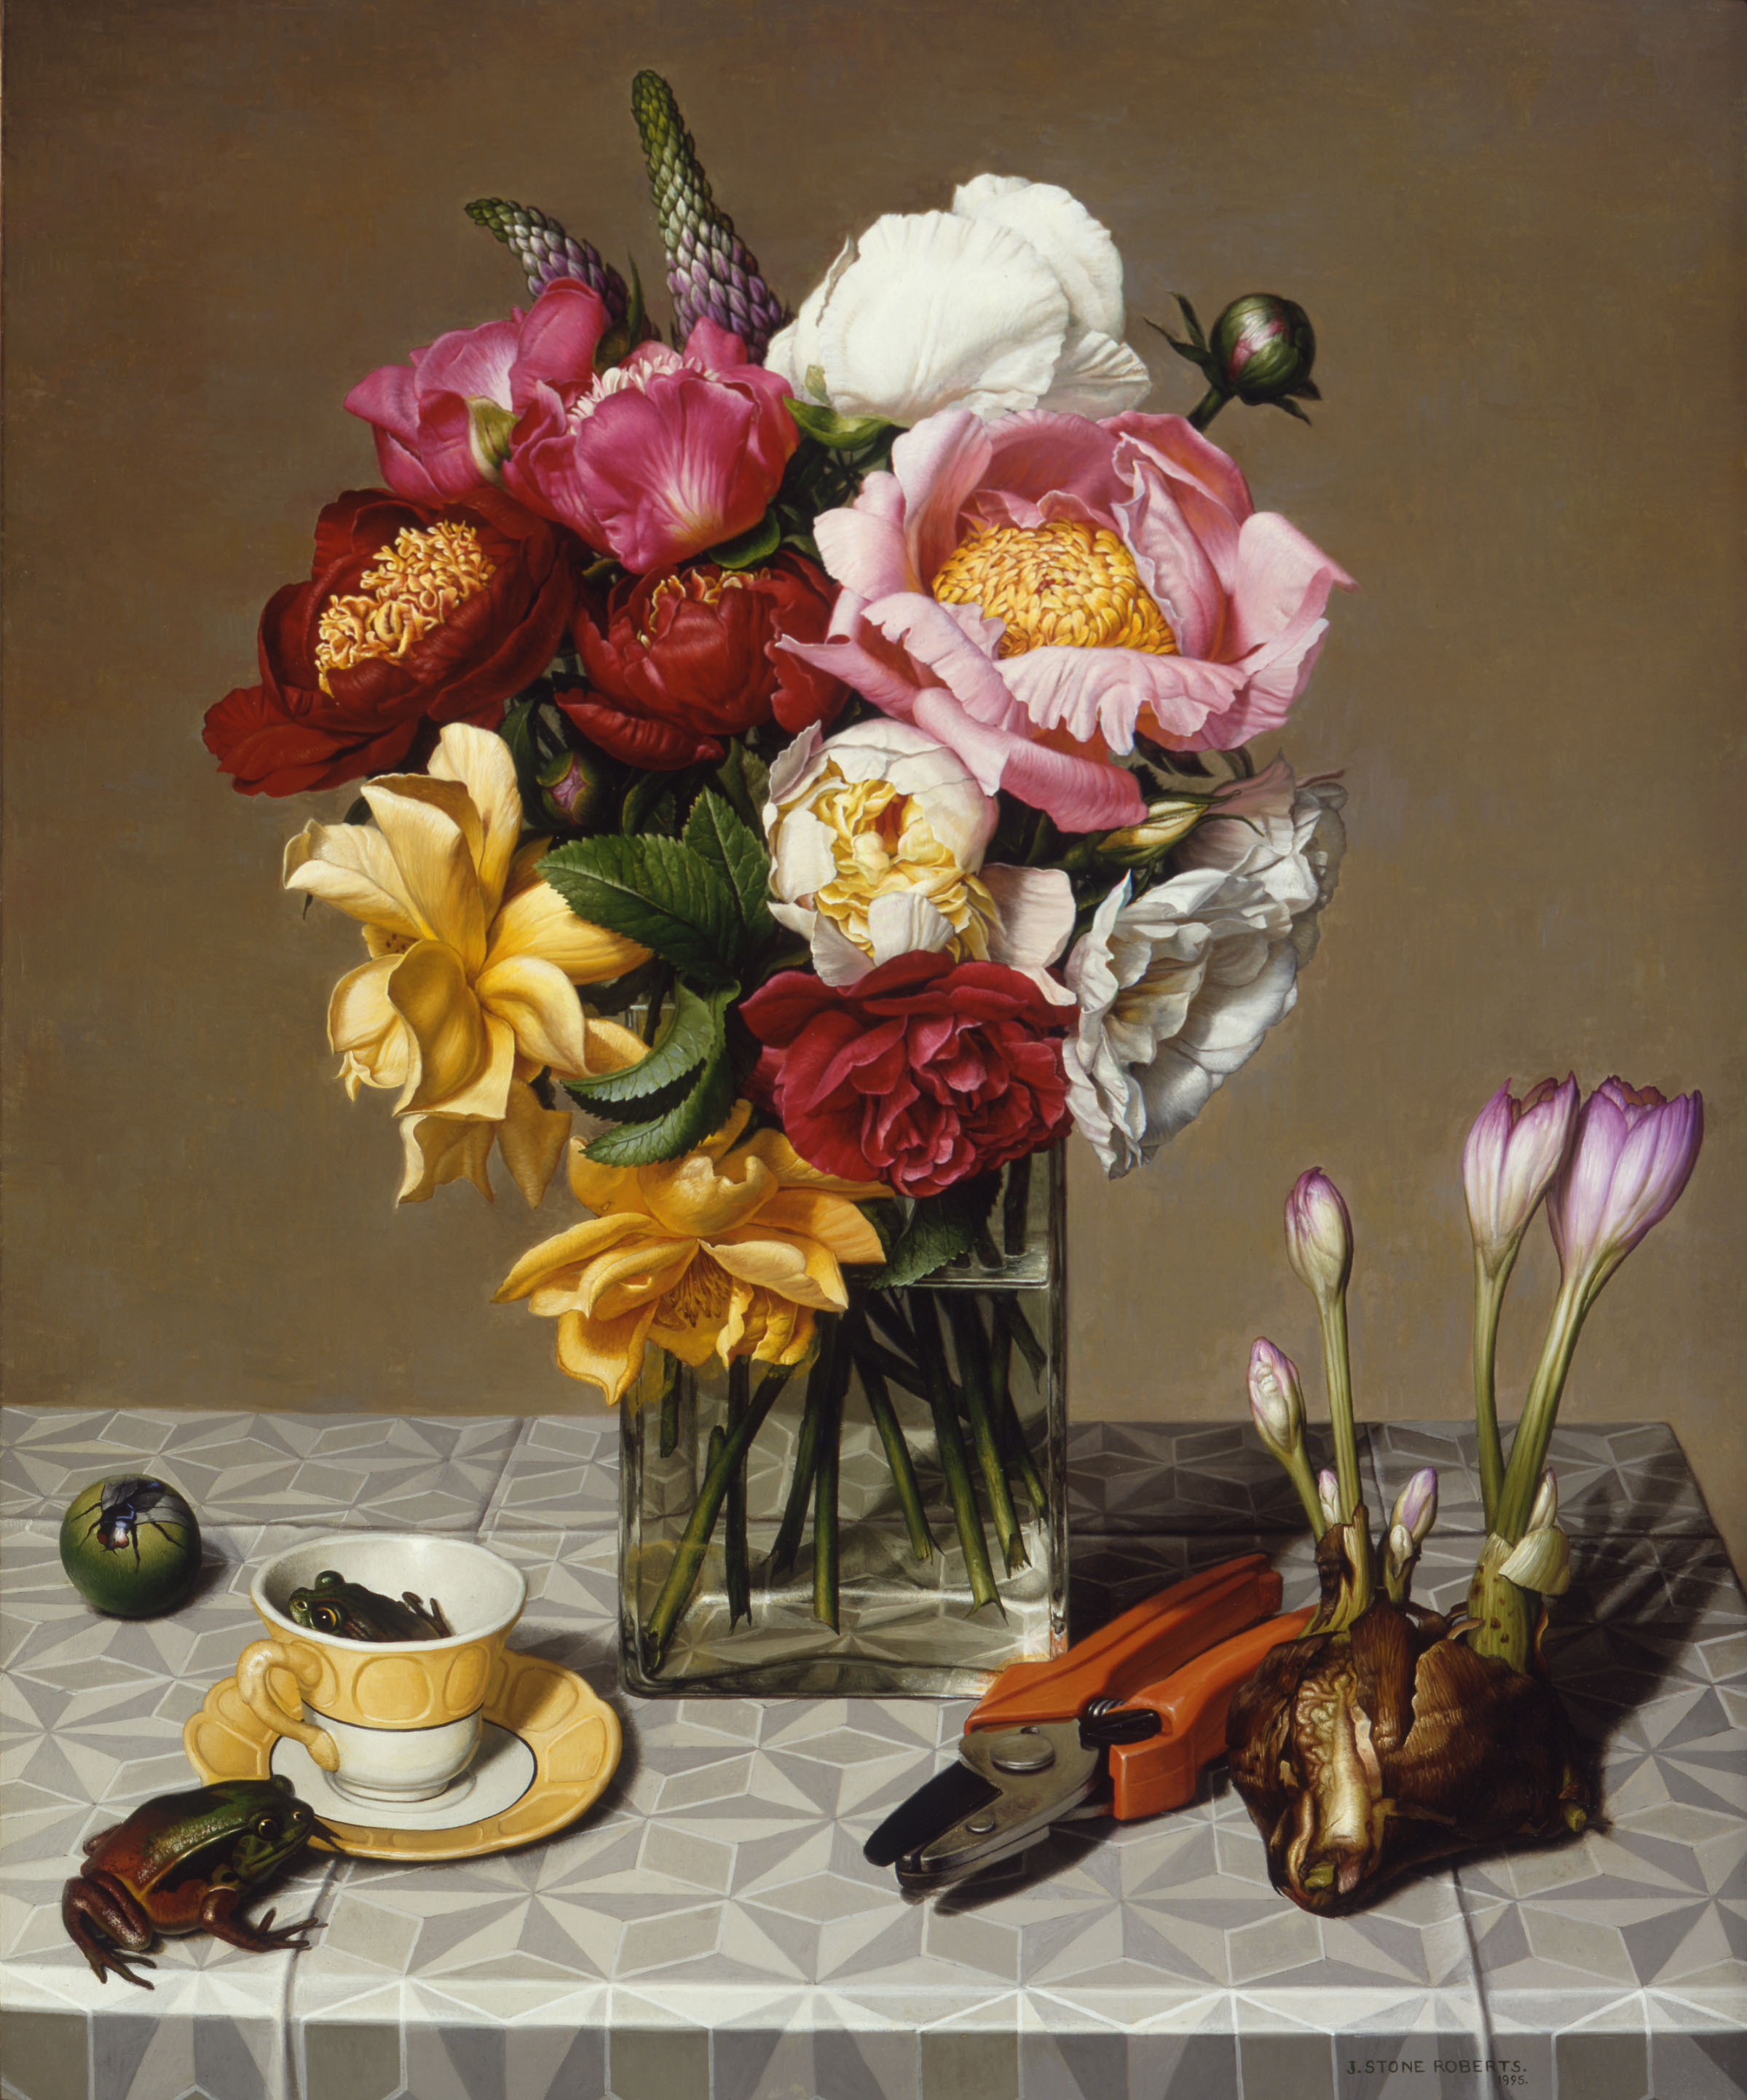 FLOWERS, FROGS AND COLCHICUM (1995)